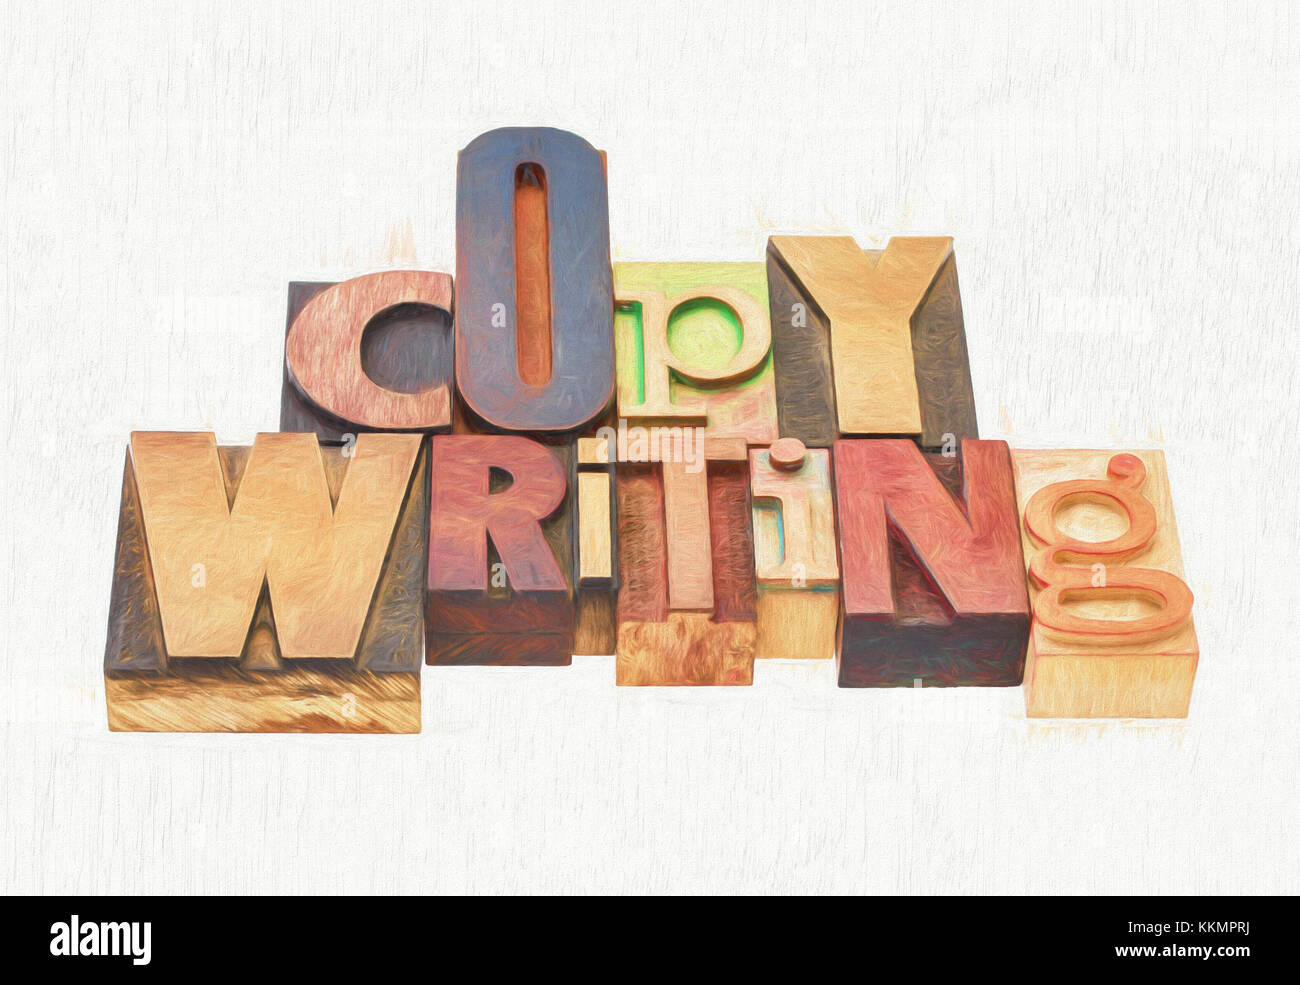 copywriting word  -  text in mixed letterpress wood type printing blocks, a photo with a digital painting effect - Stock Image